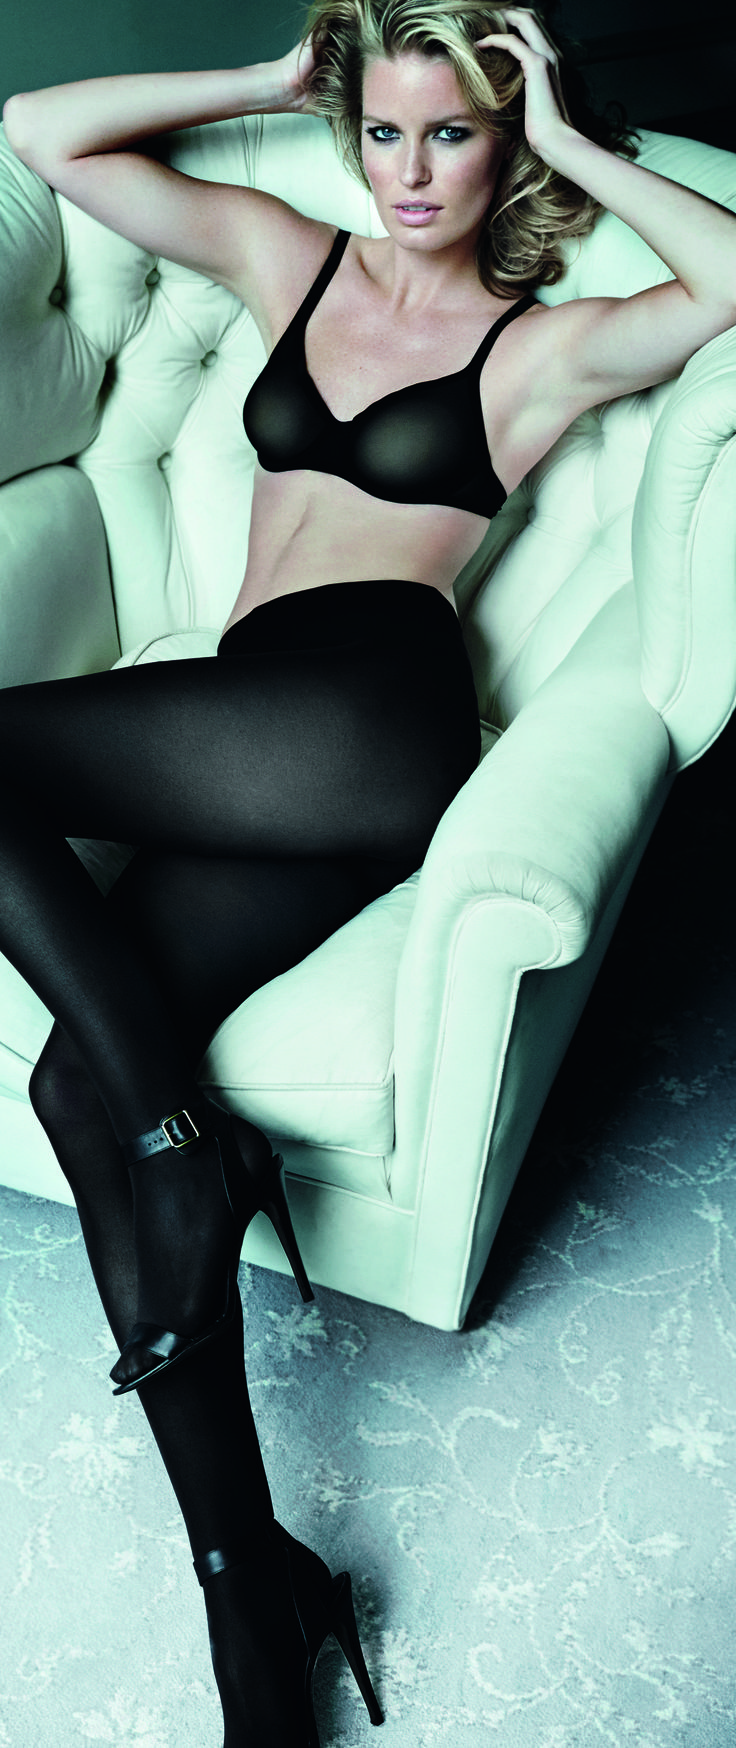 Wolford Pure 50 Tights, the world's first bonded tights